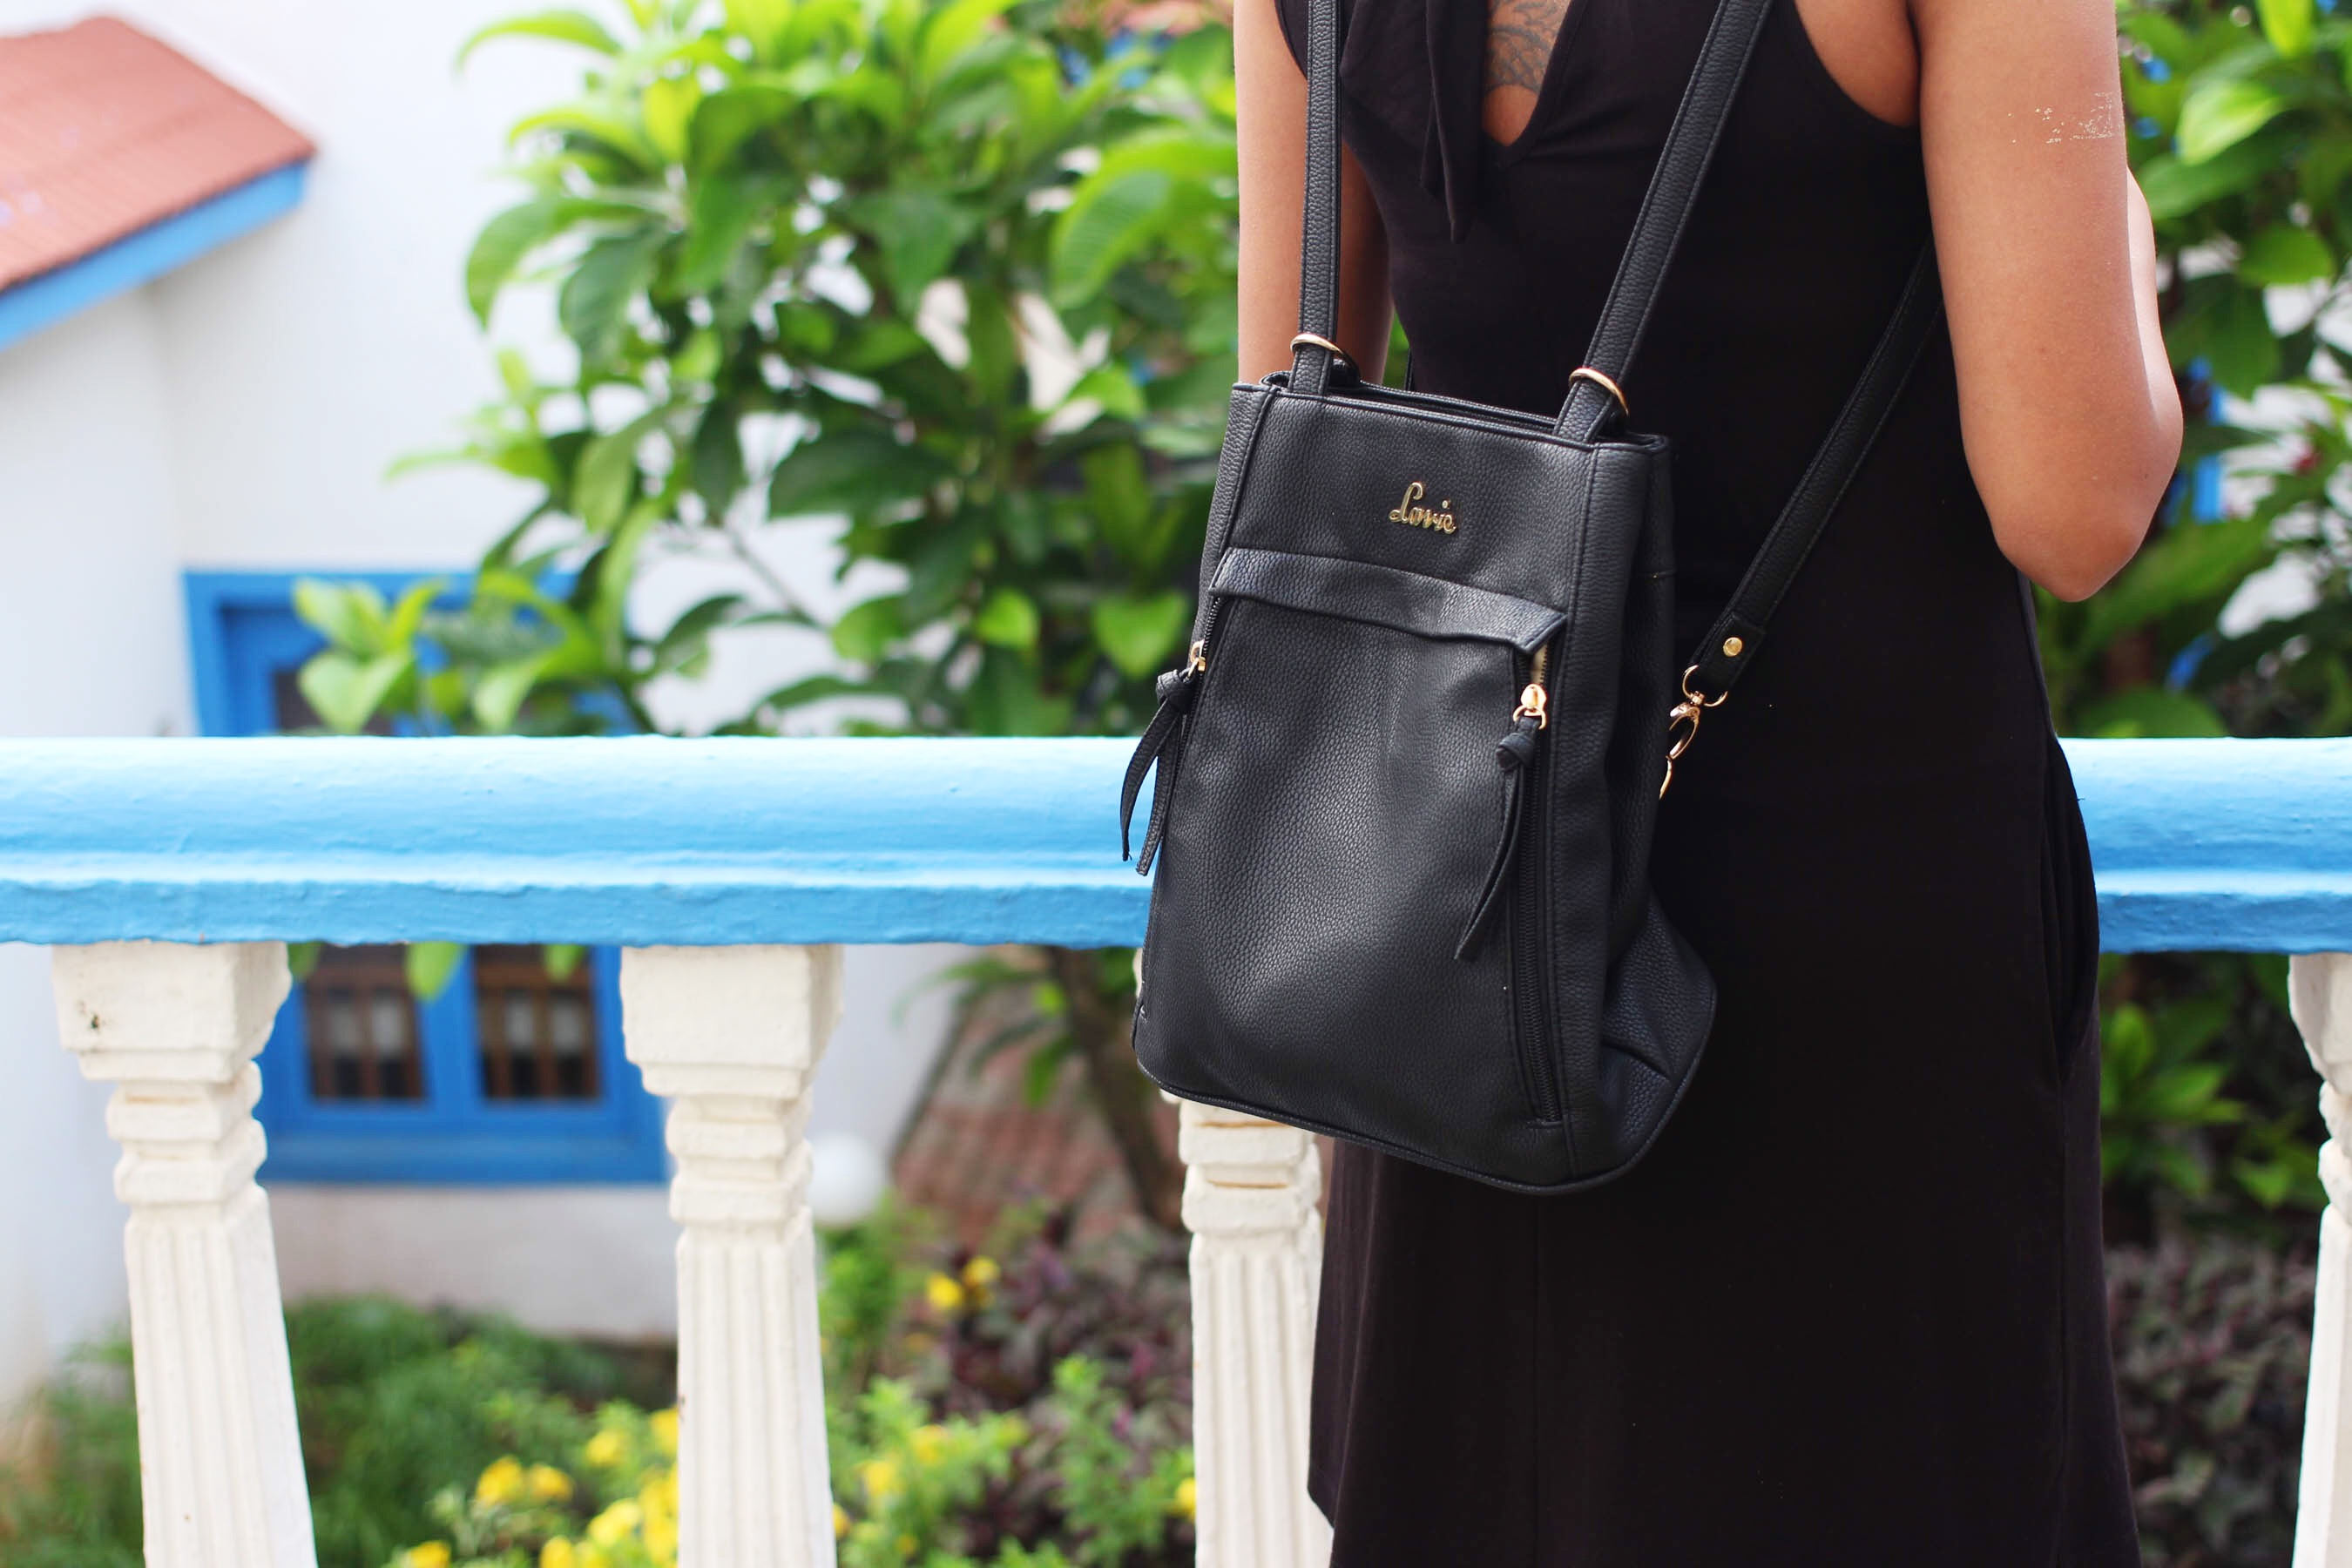 Lavie backpack